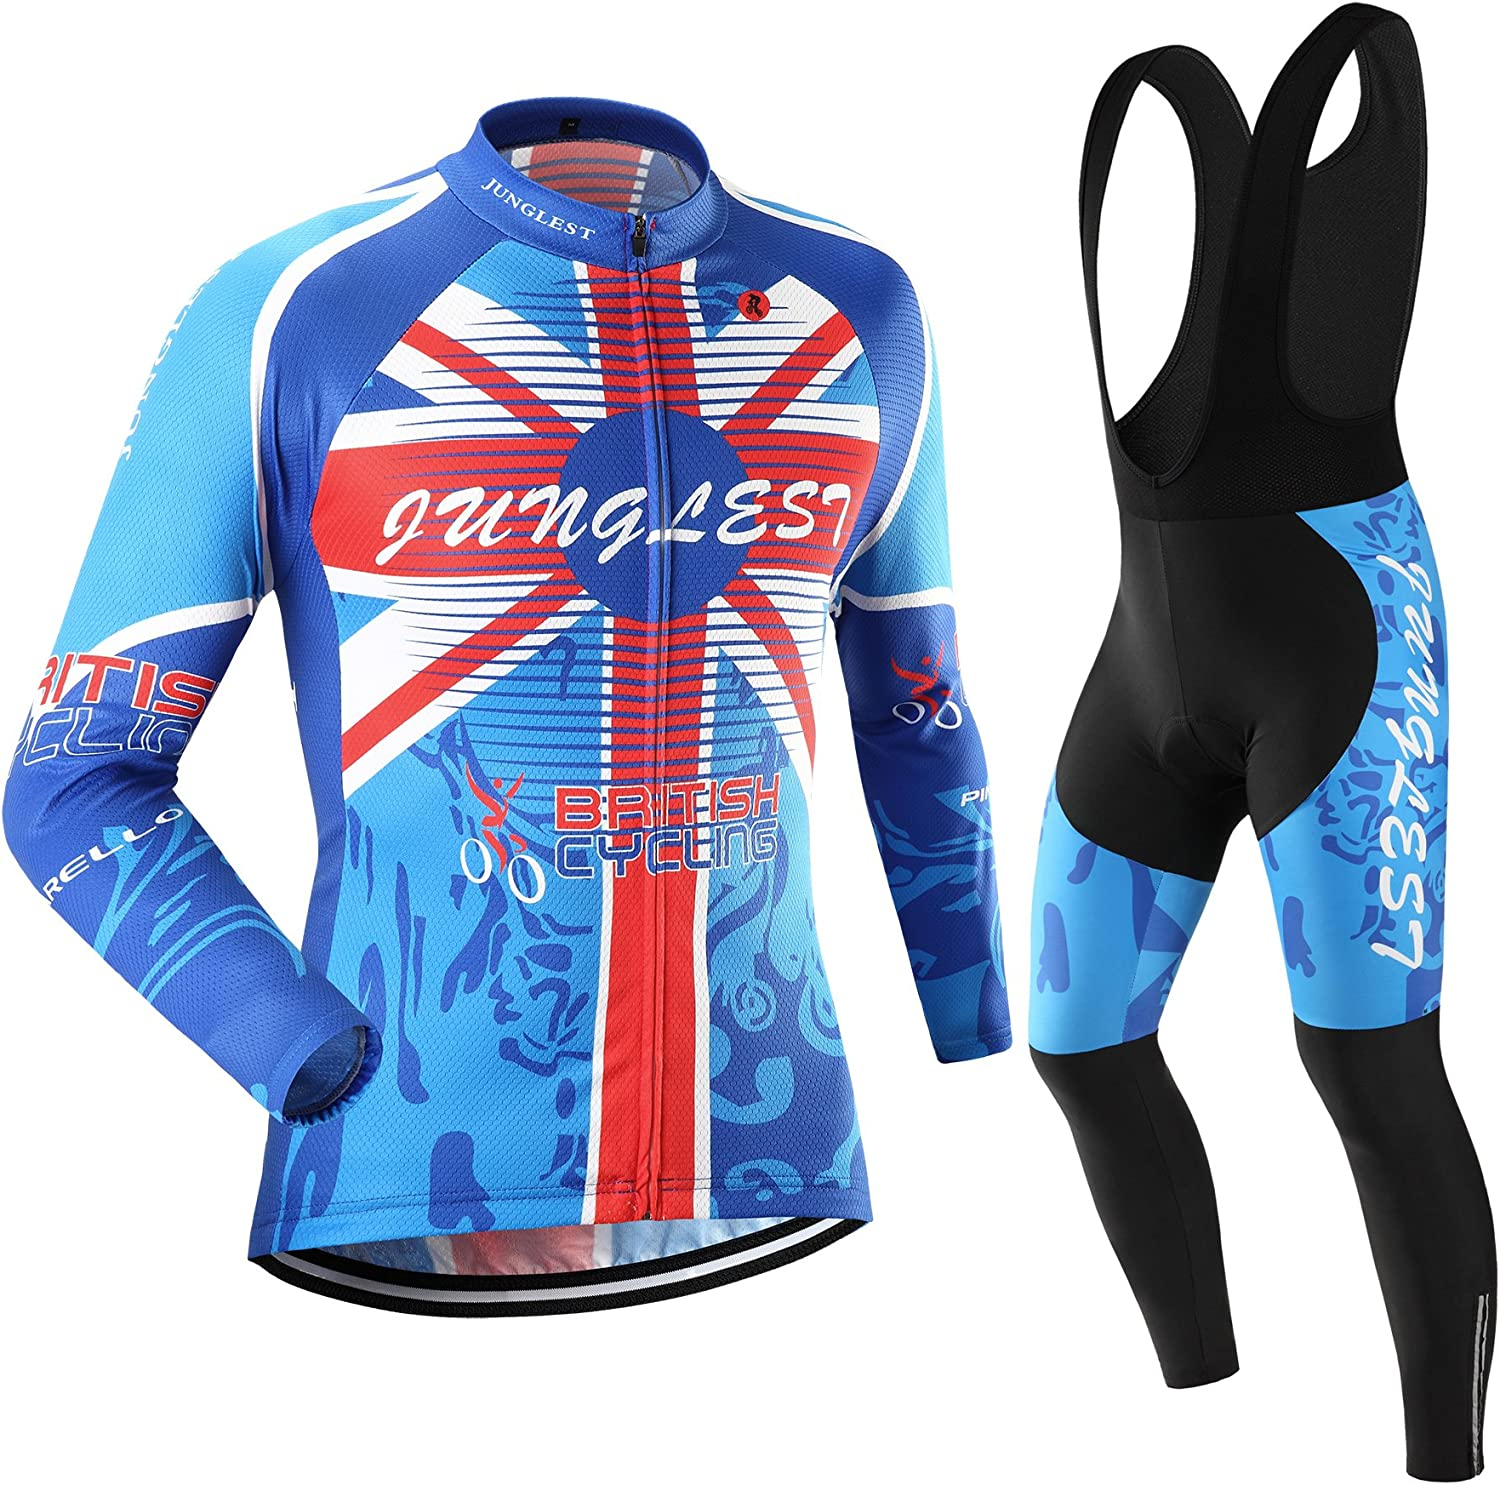 JUNGLEST Cycling Jersey Set Wen Sleeve Department Manufacturer direct delivery store Option:bib S~5XL Long 3D